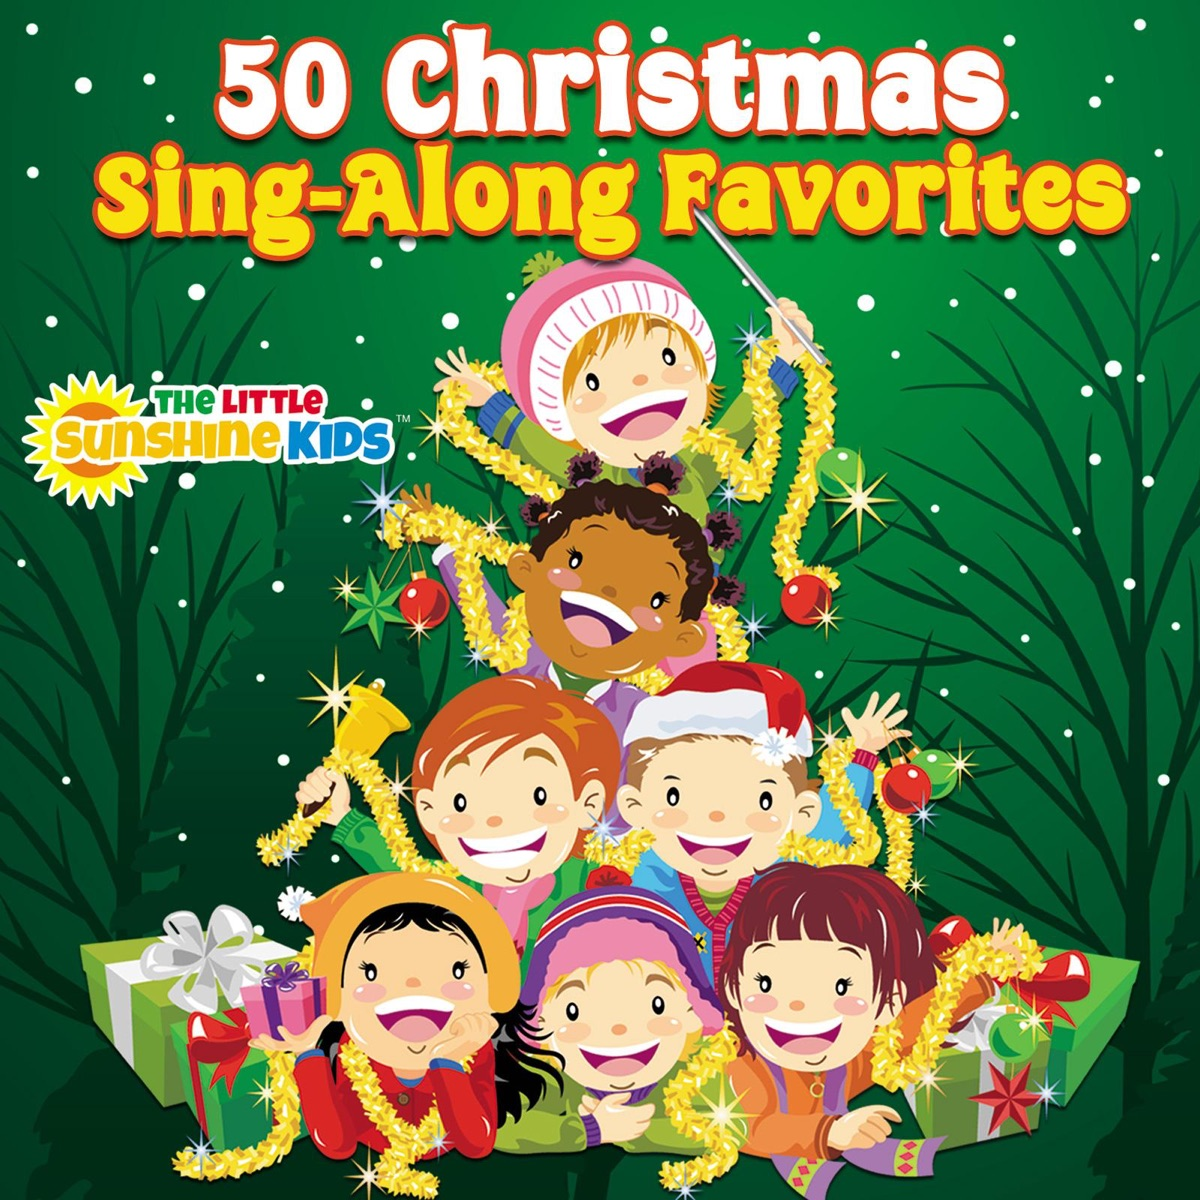 50 Christmas Sing-Along Favorites Album Cover by The Little Sunshine ...